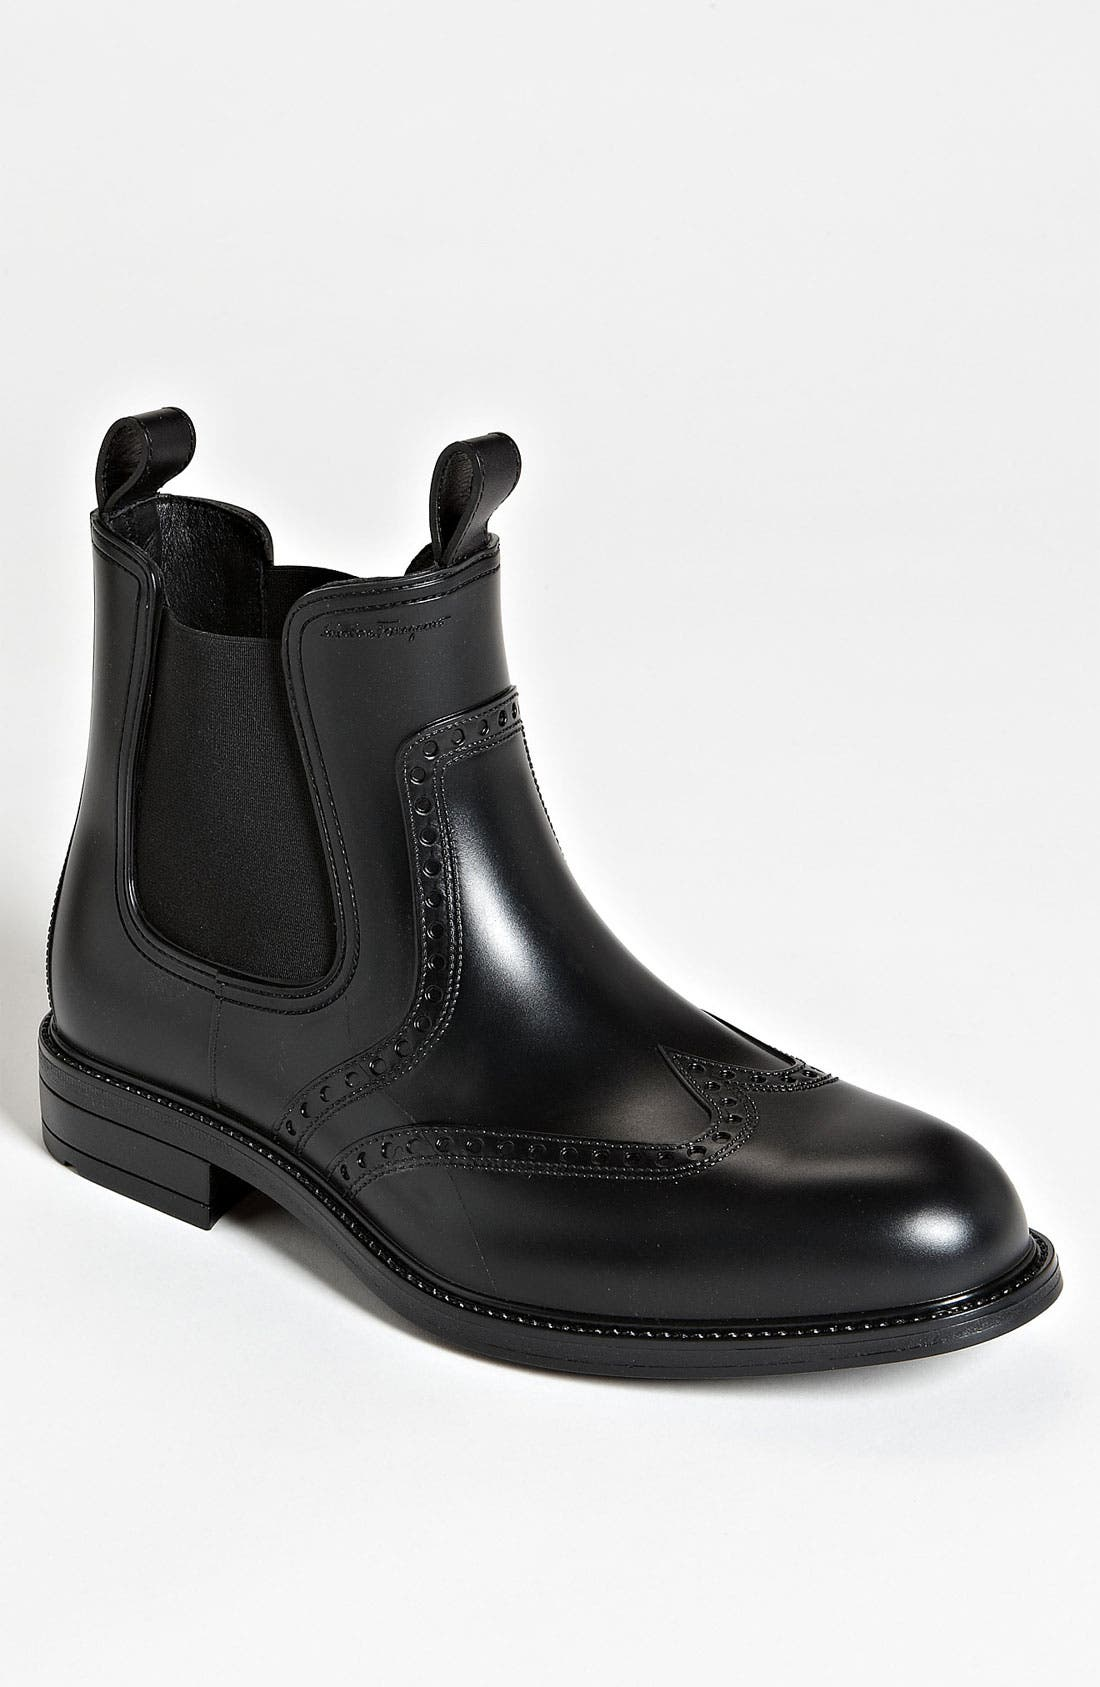 Alternate Image 1 Selected - Salvatore Ferragamo 'Boston'